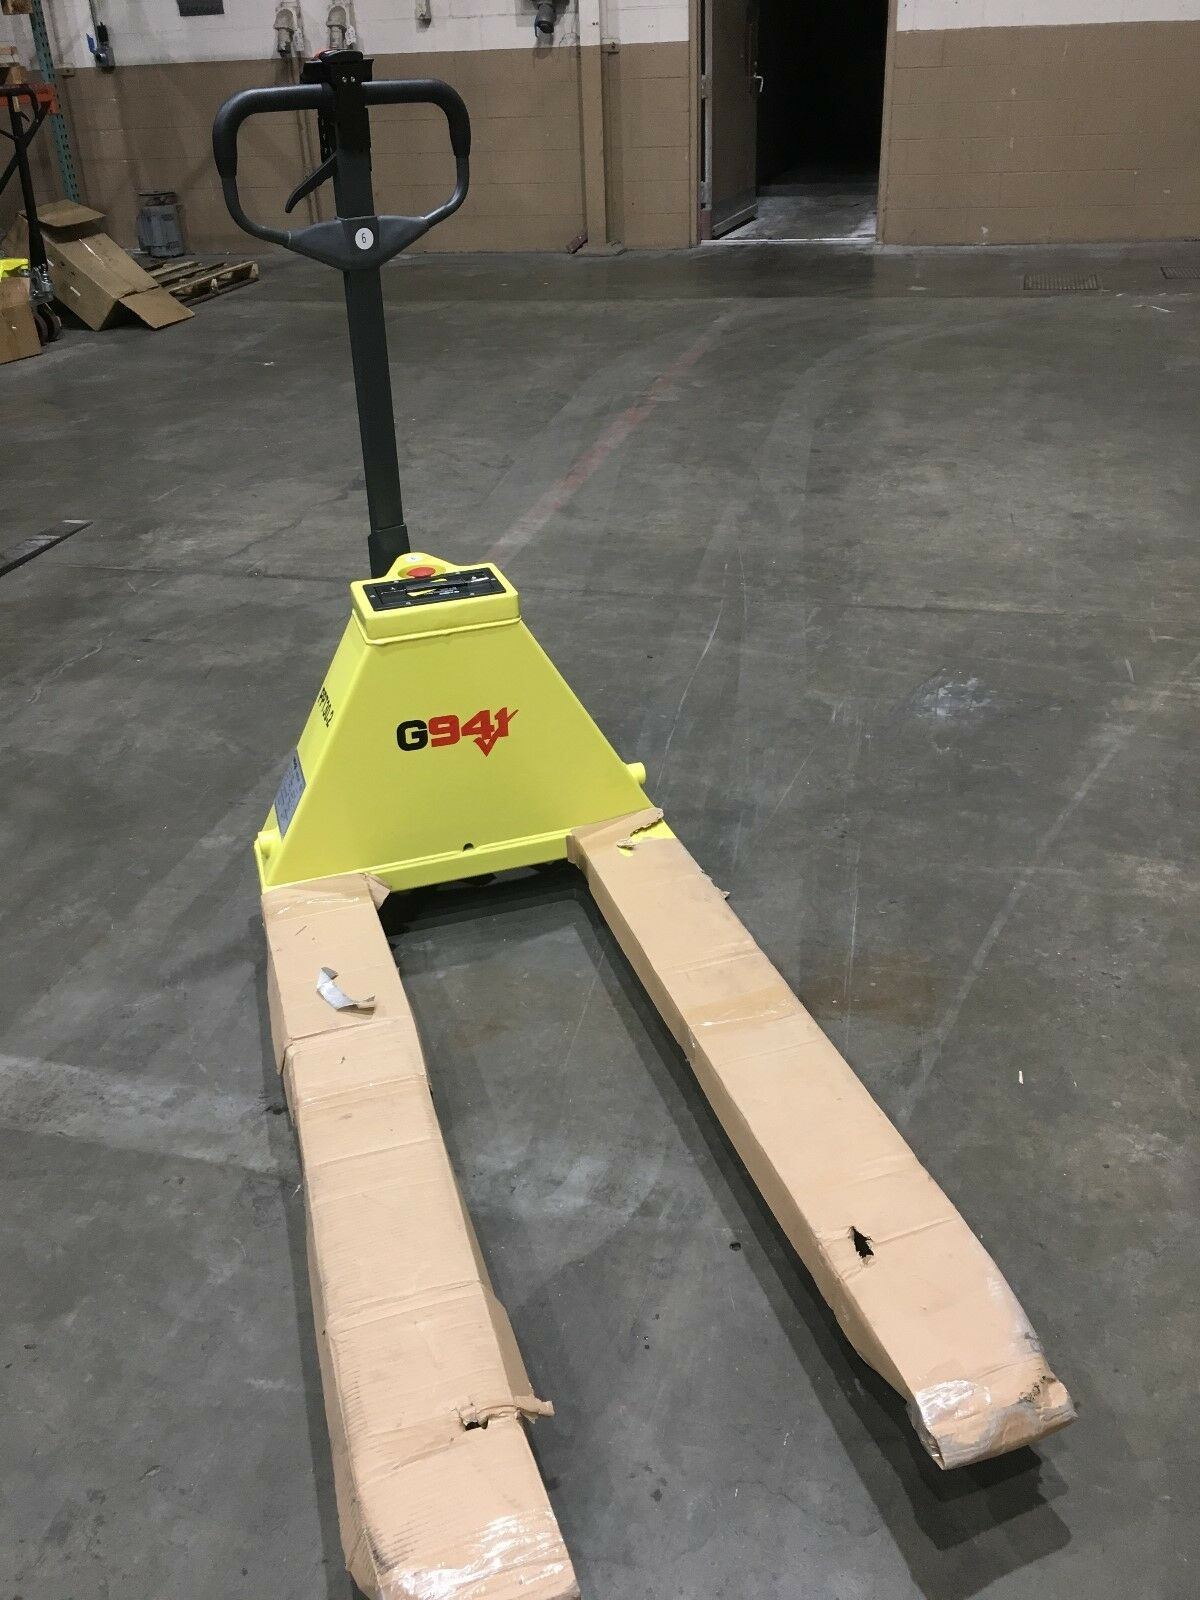 Used pallet jack for sale ebay water heaters for sale home depot